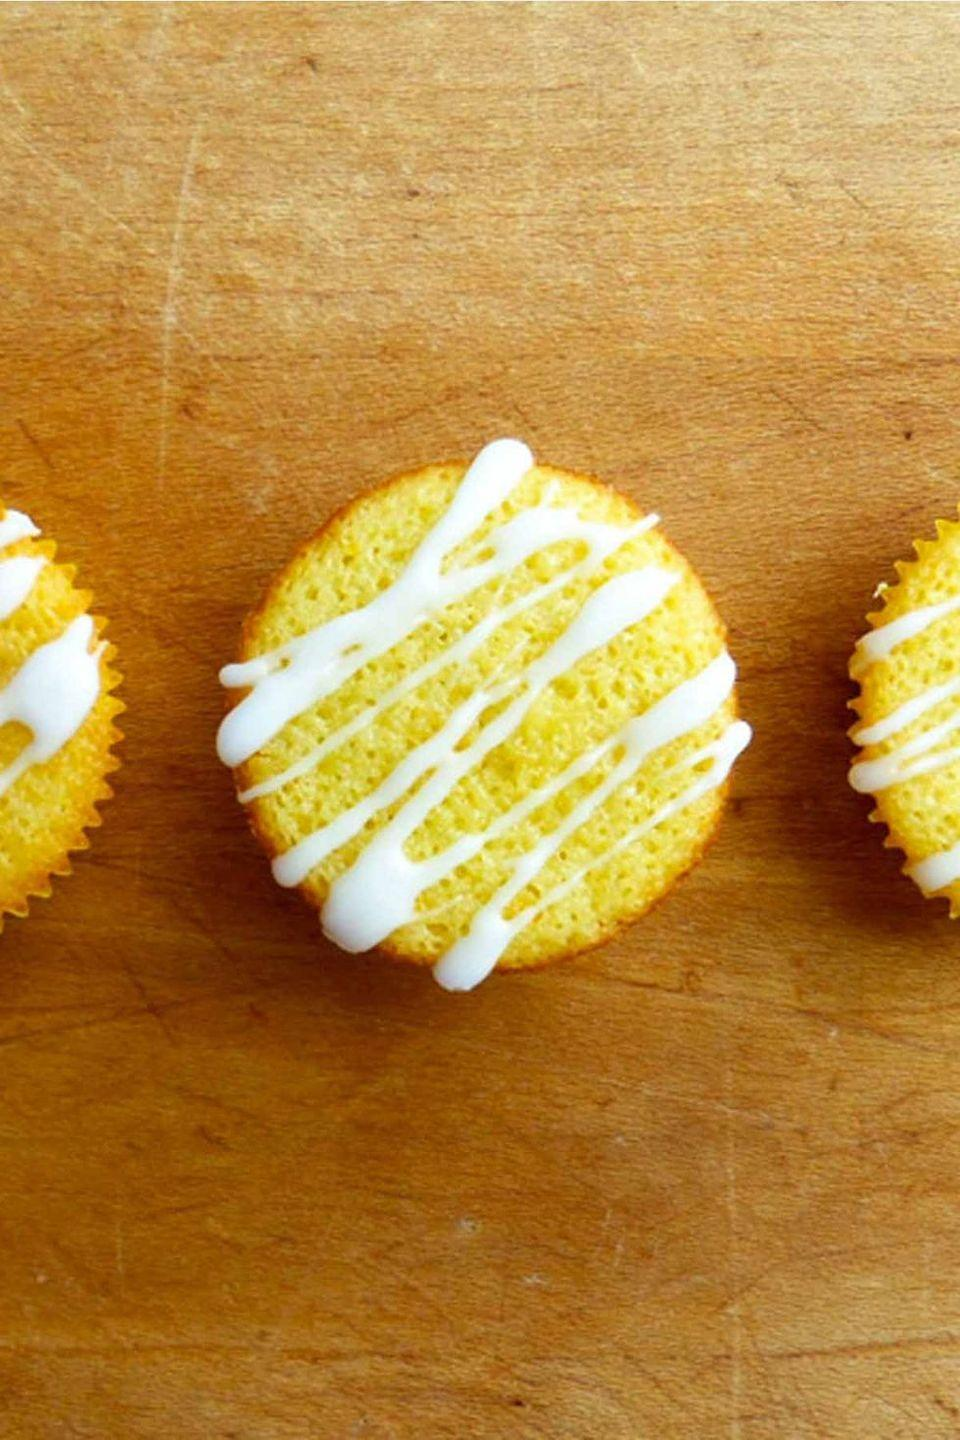 """<p>Theses cupcakes deliver a fresh citrus flavor without falling into the trap of being overly sweet or sour. </p><p><strong><em><a href=""""https://www.womansday.com/food-recipes/food-drinks/recipes/a39975/orange-olive-oil-cupcakes-recipe-ghk0514/"""" rel=""""nofollow noopener"""" target=""""_blank"""" data-ylk=""""slk:Get the Orange Olive Oil Cupcakes recipe."""" class=""""link rapid-noclick-resp"""">Get the Orange Olive Oil Cupcakes recipe. </a></em></strong></p>"""